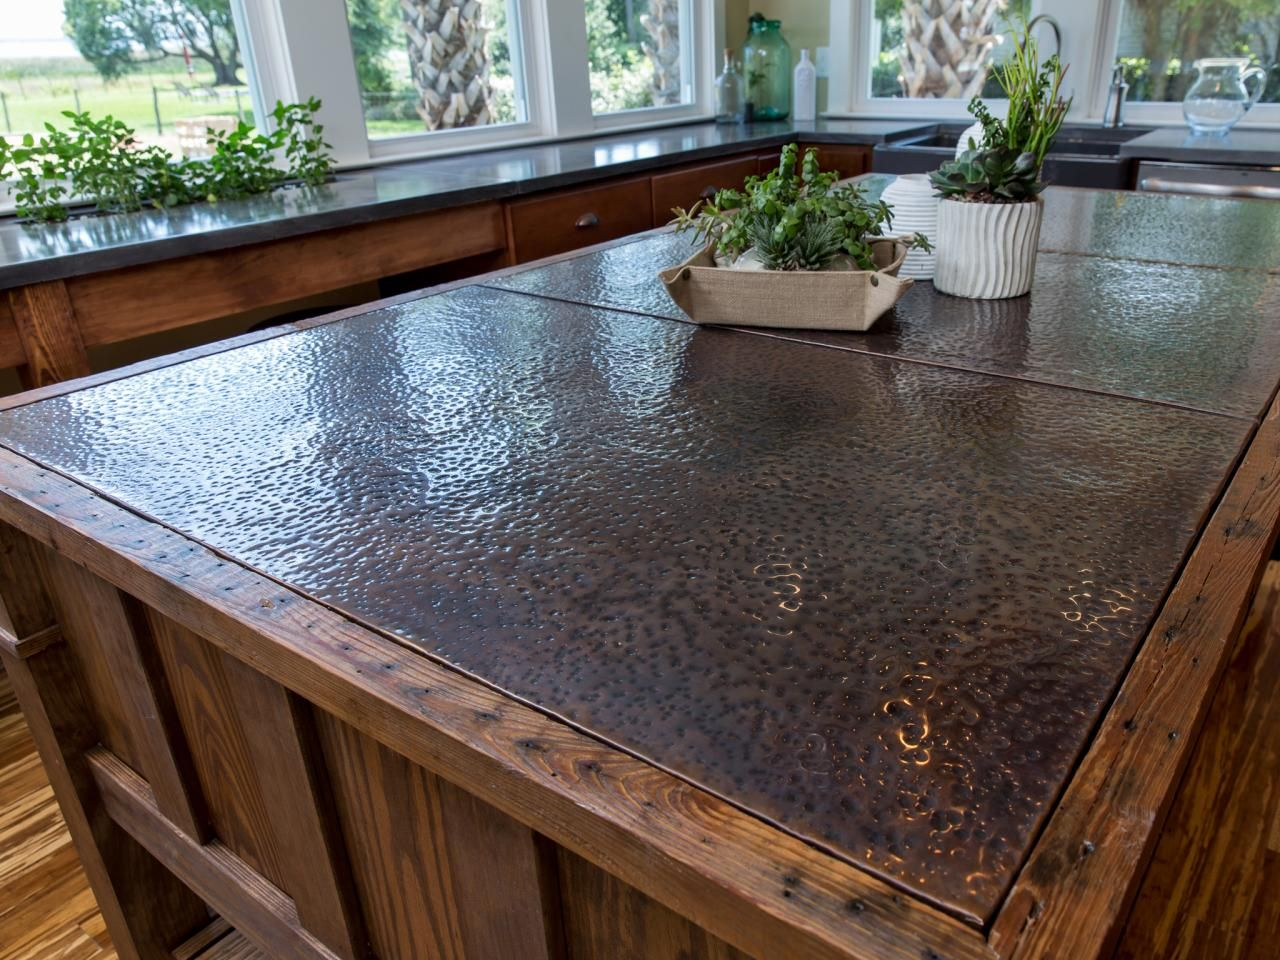 Hammered Copperkitchen Island Let Rusticsinks Customize Your